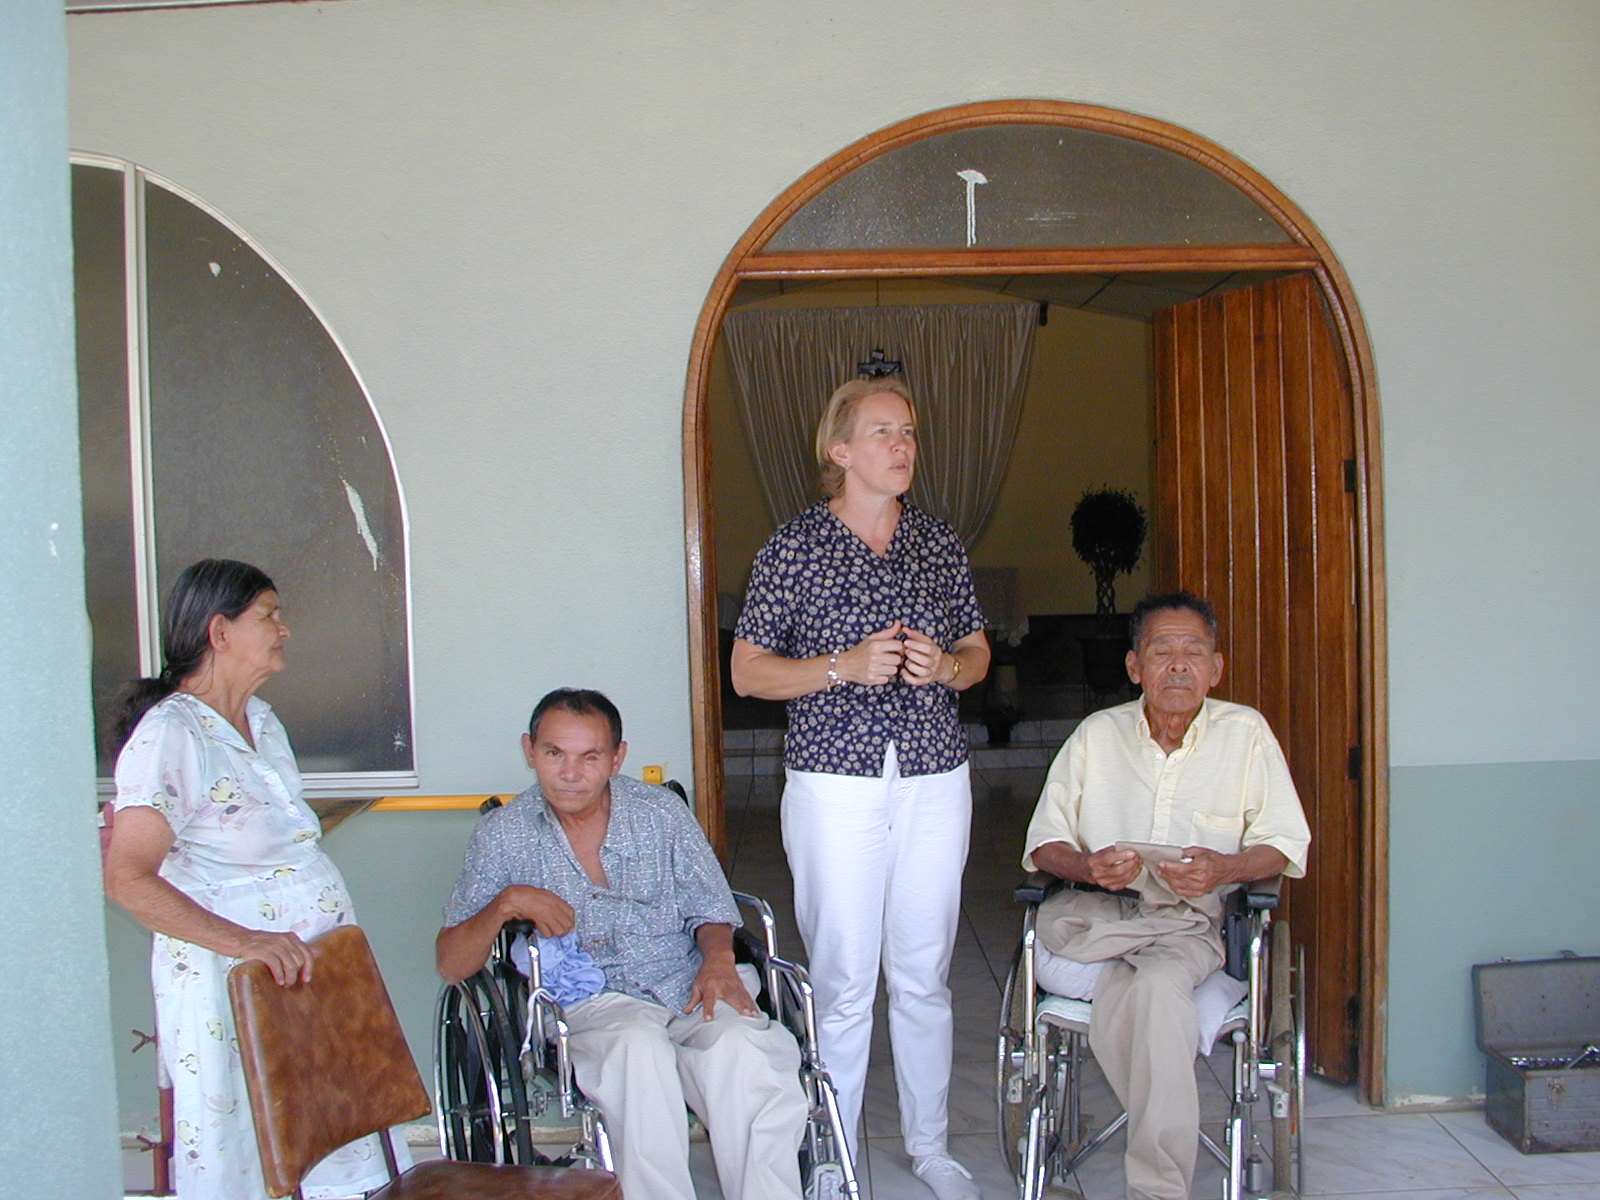 Patients & Mary.JPG